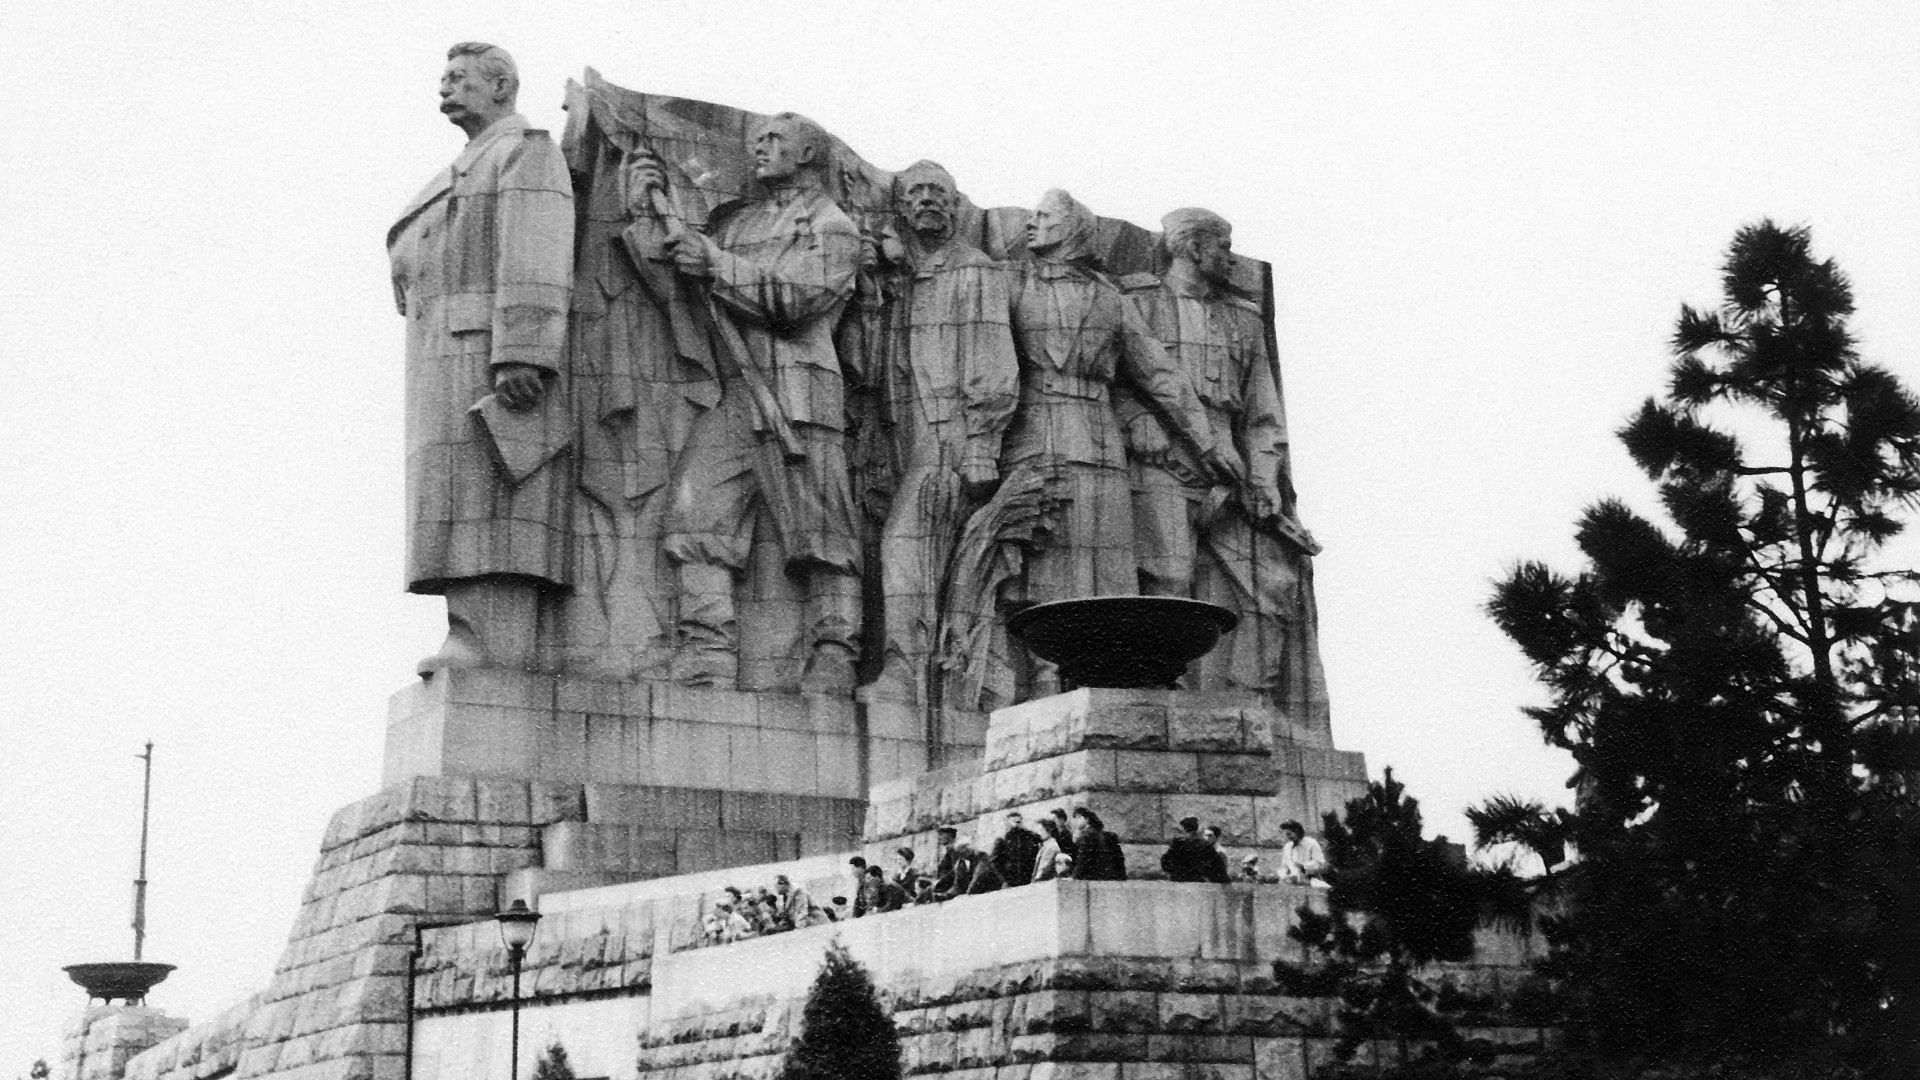 Monument to Stalin: photo and description